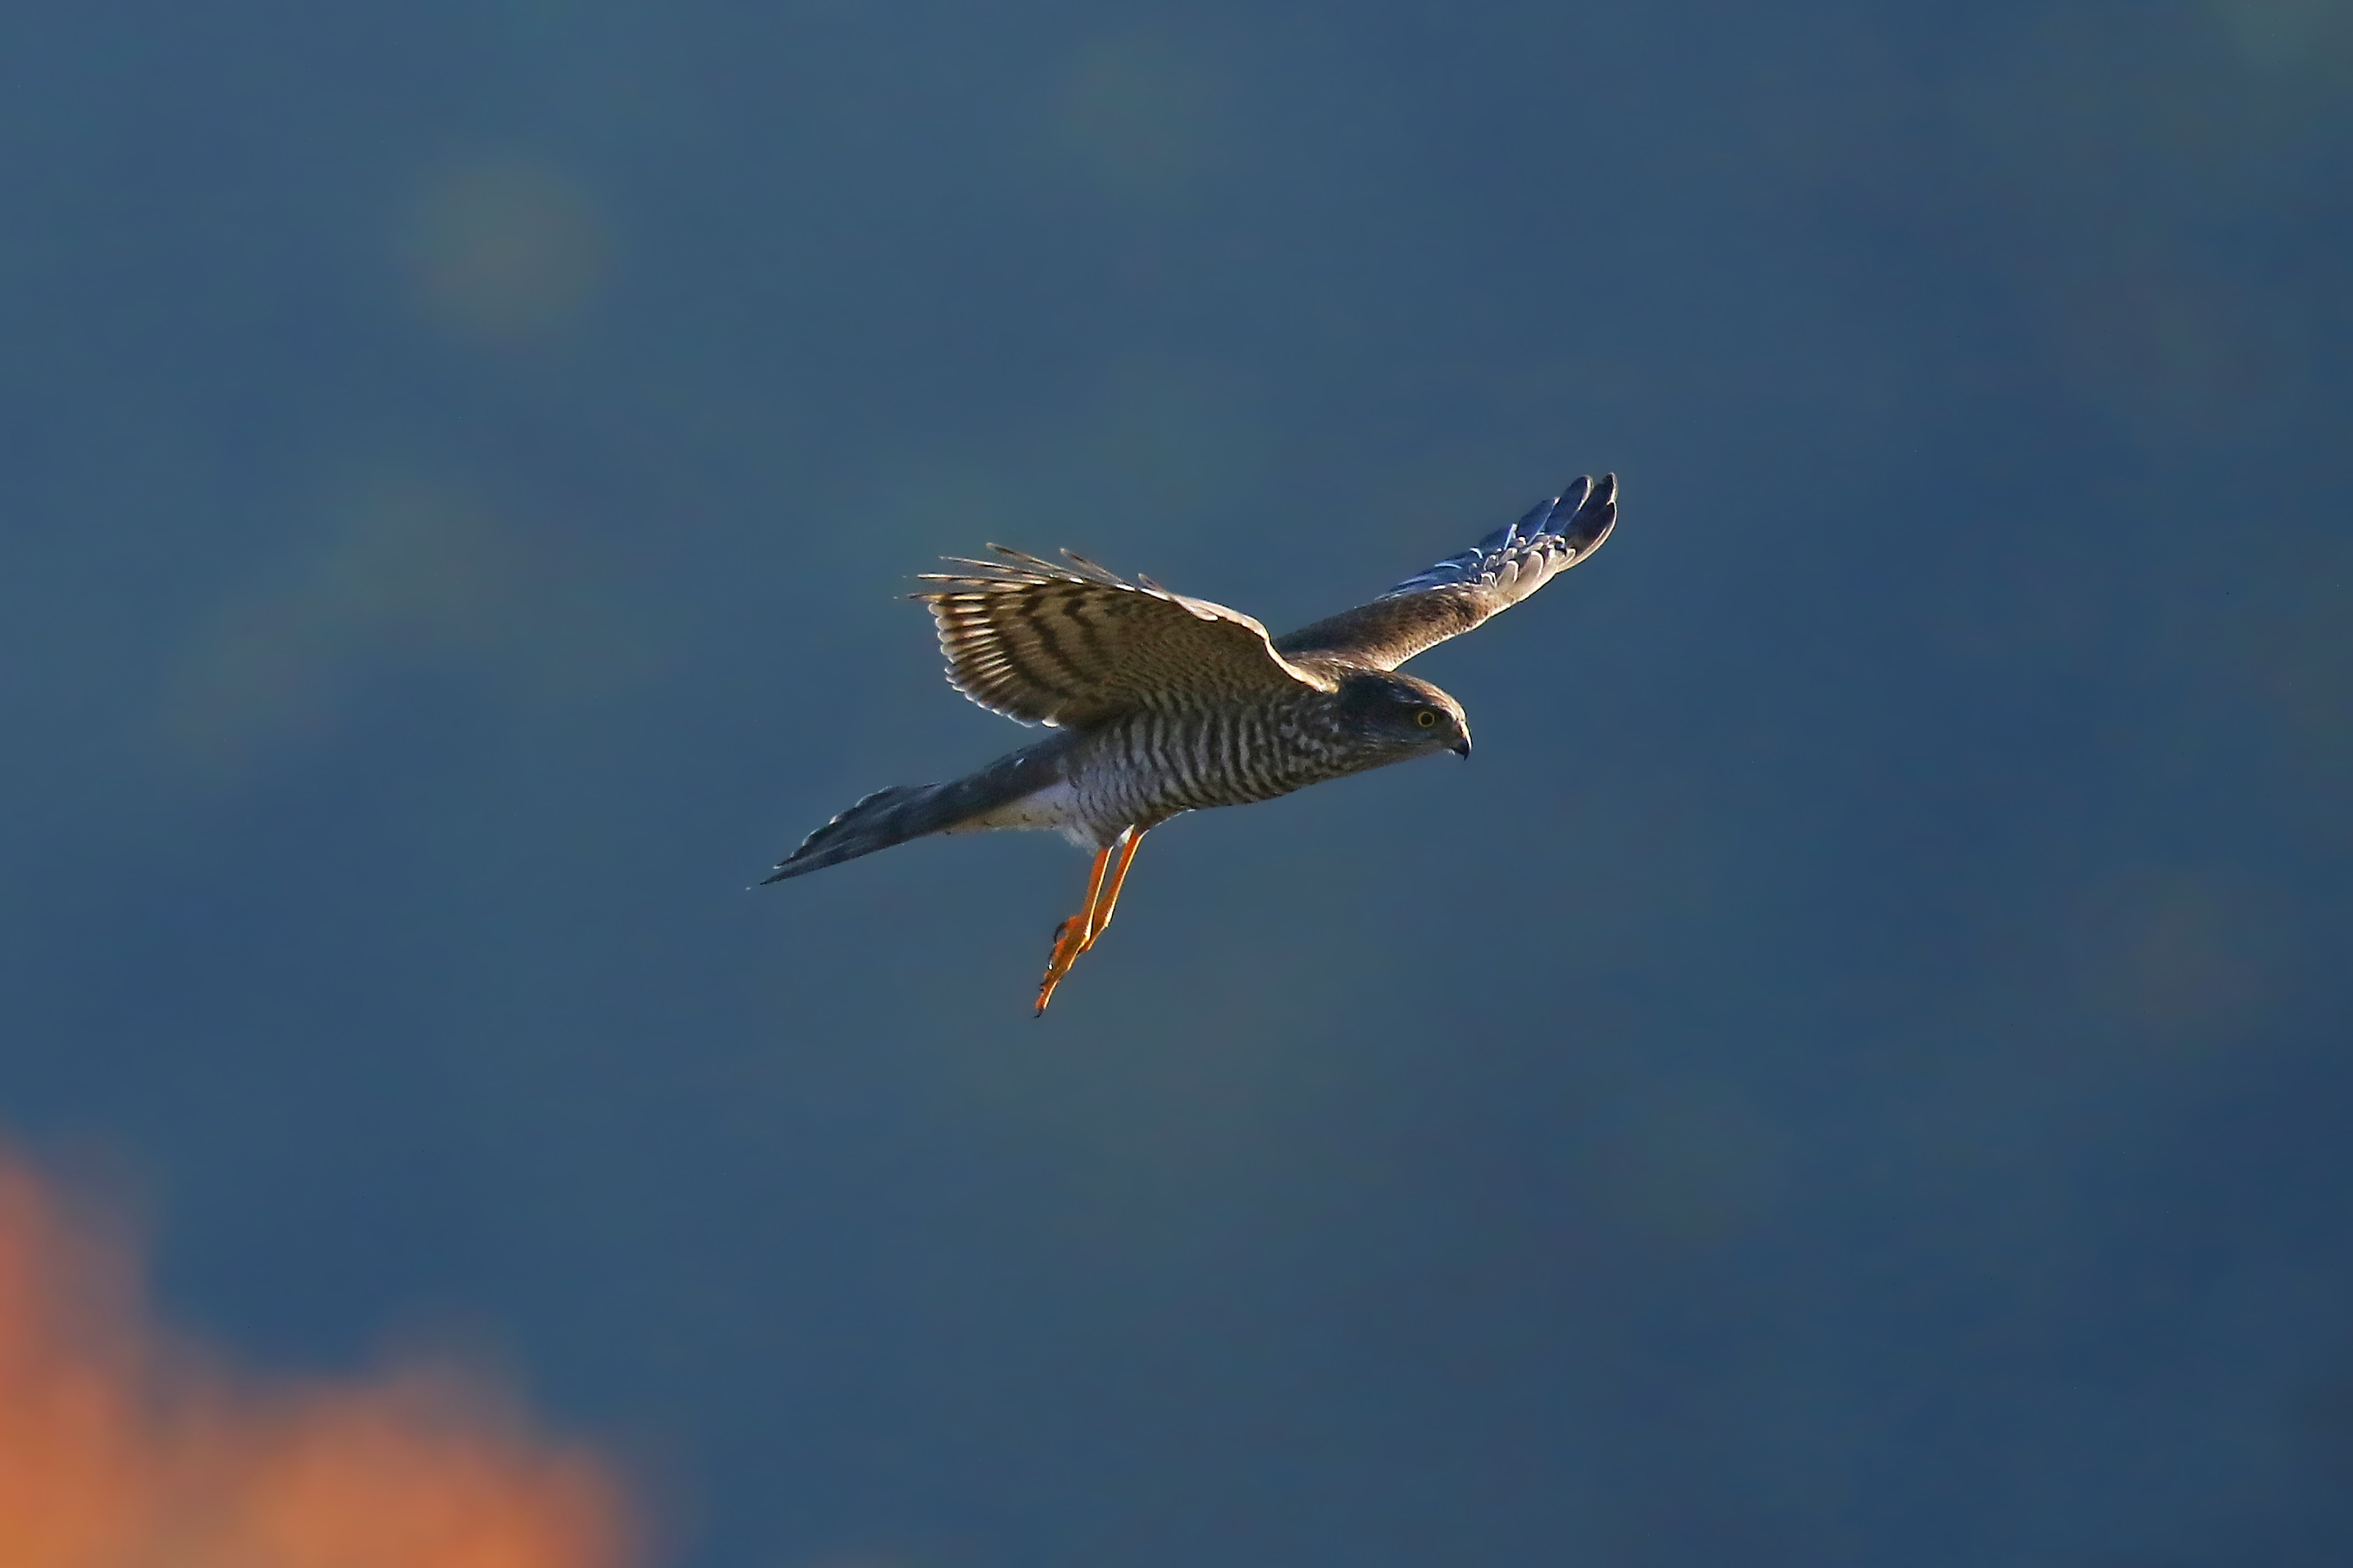 Sperber (Accipiter nisus) am Himmel